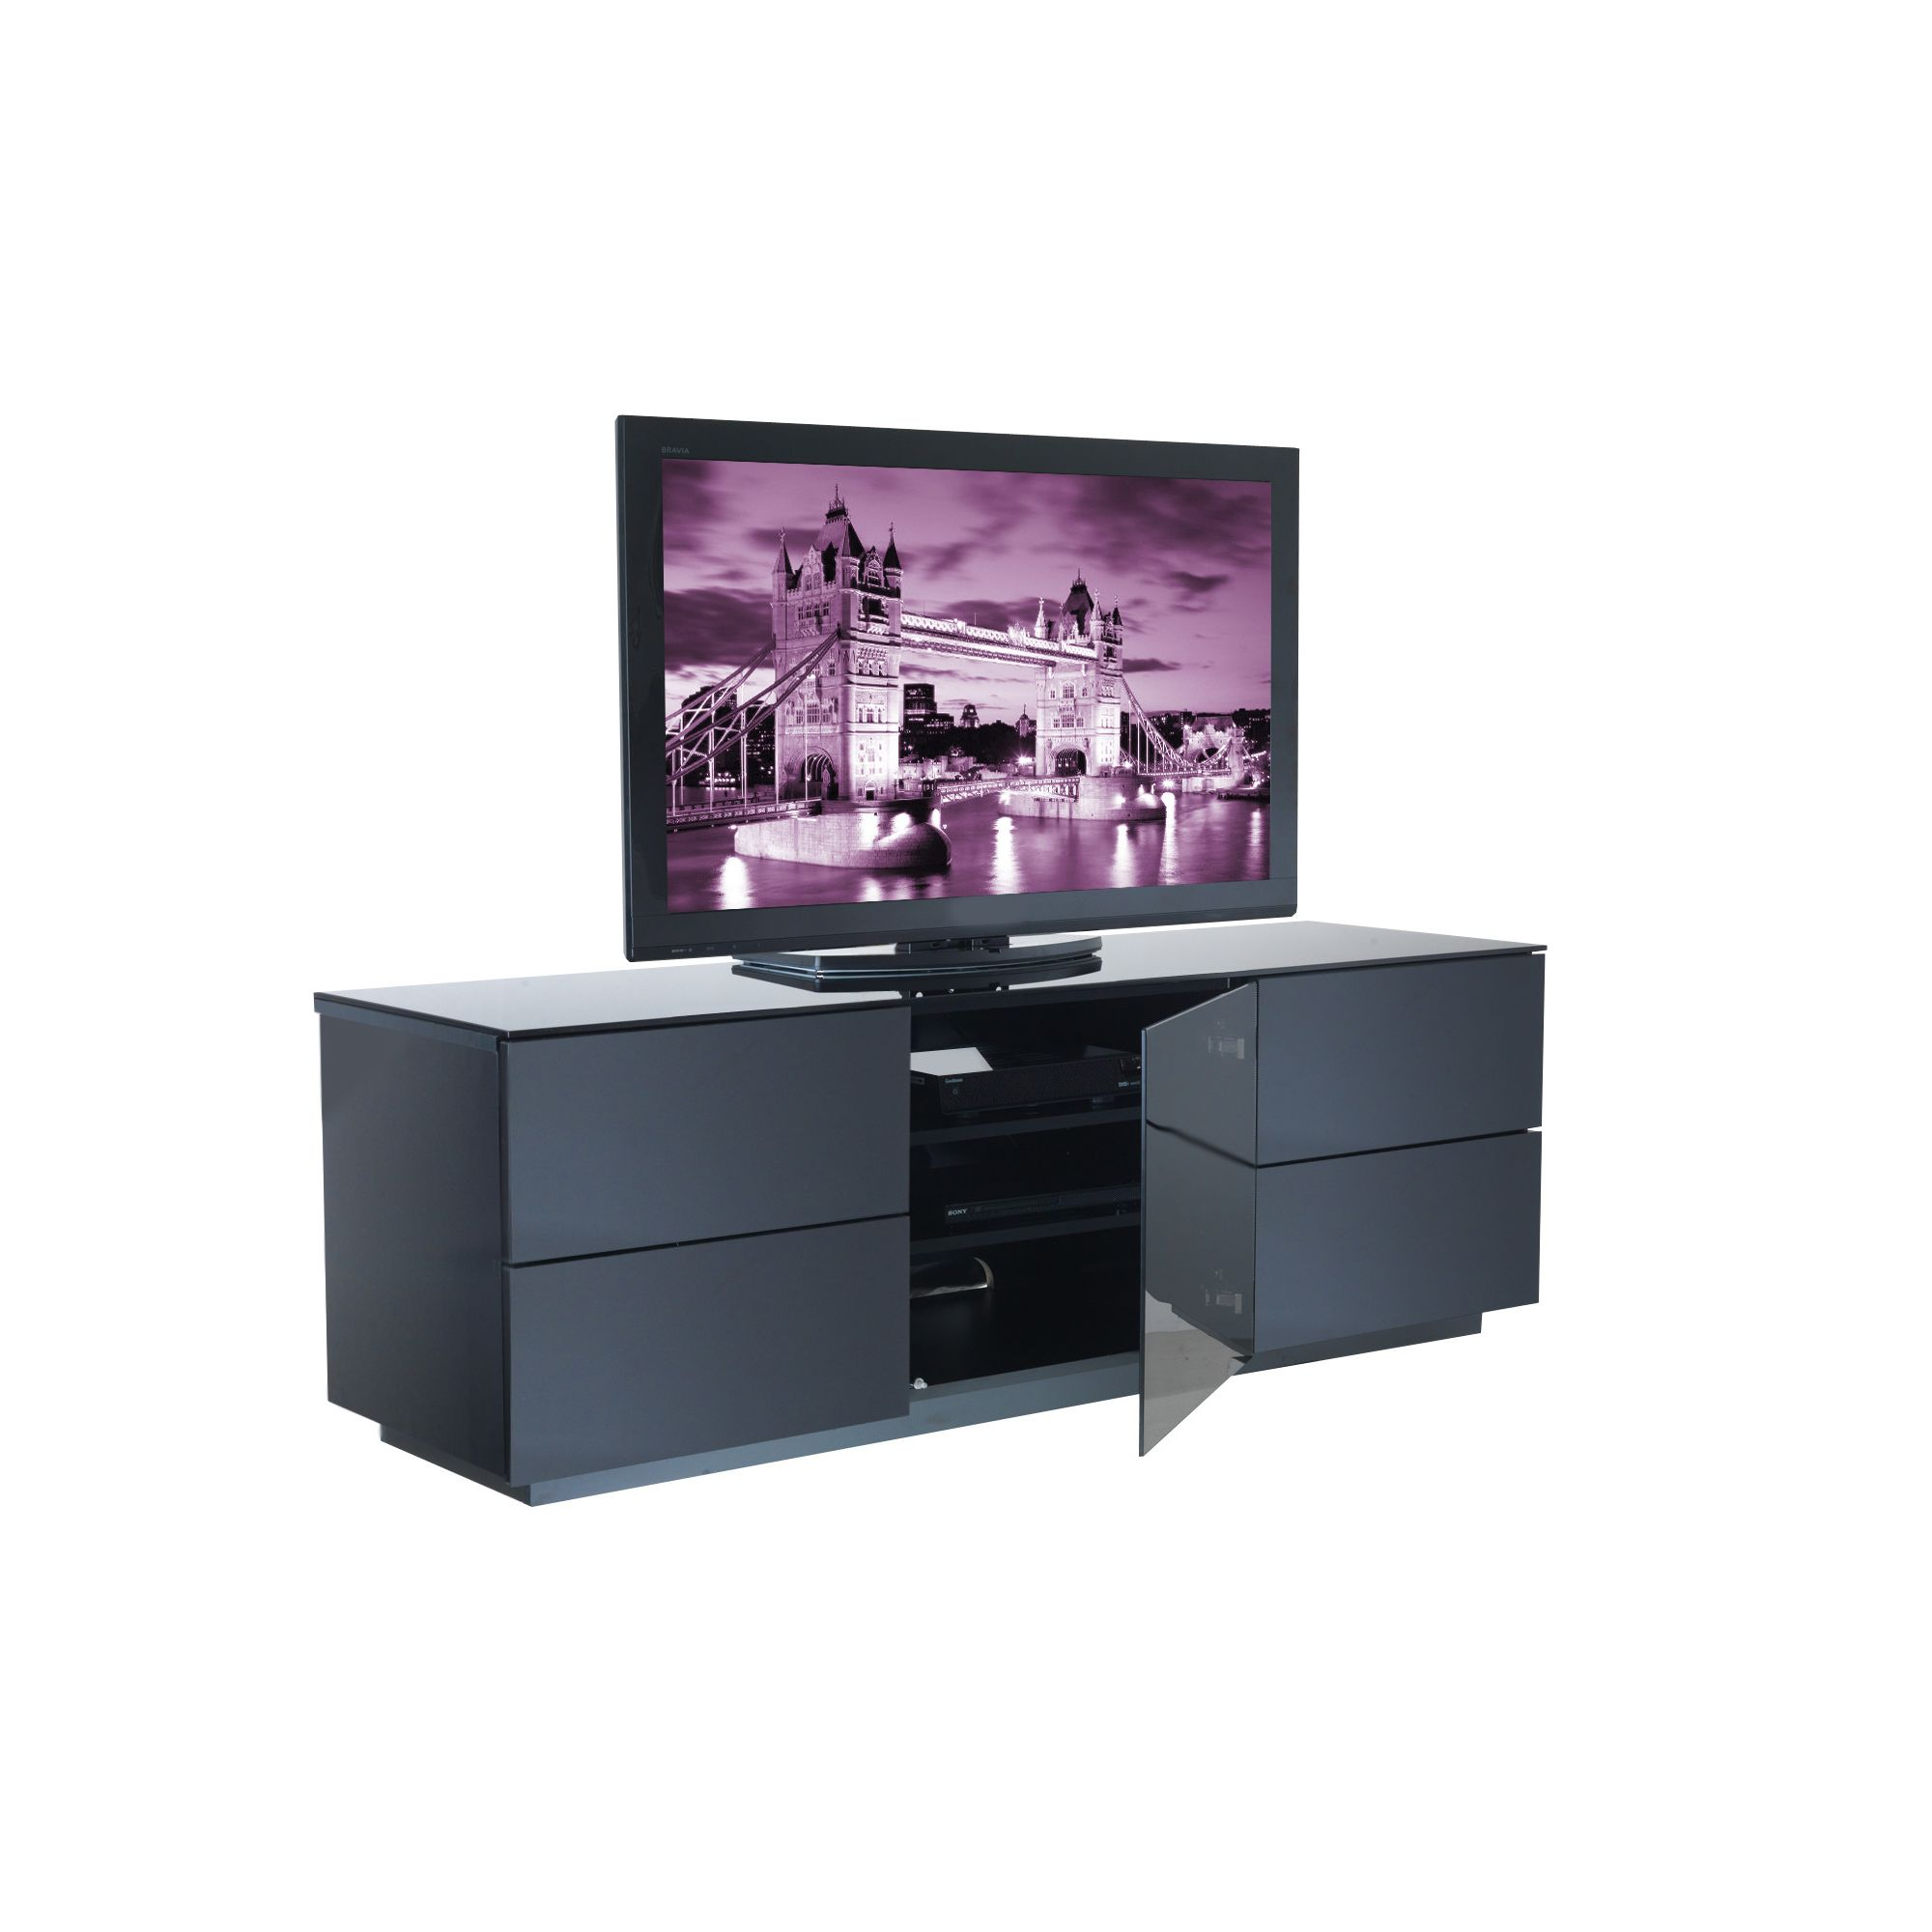 UK-CF City Scape London TV Stand - Black at Tesco Direct